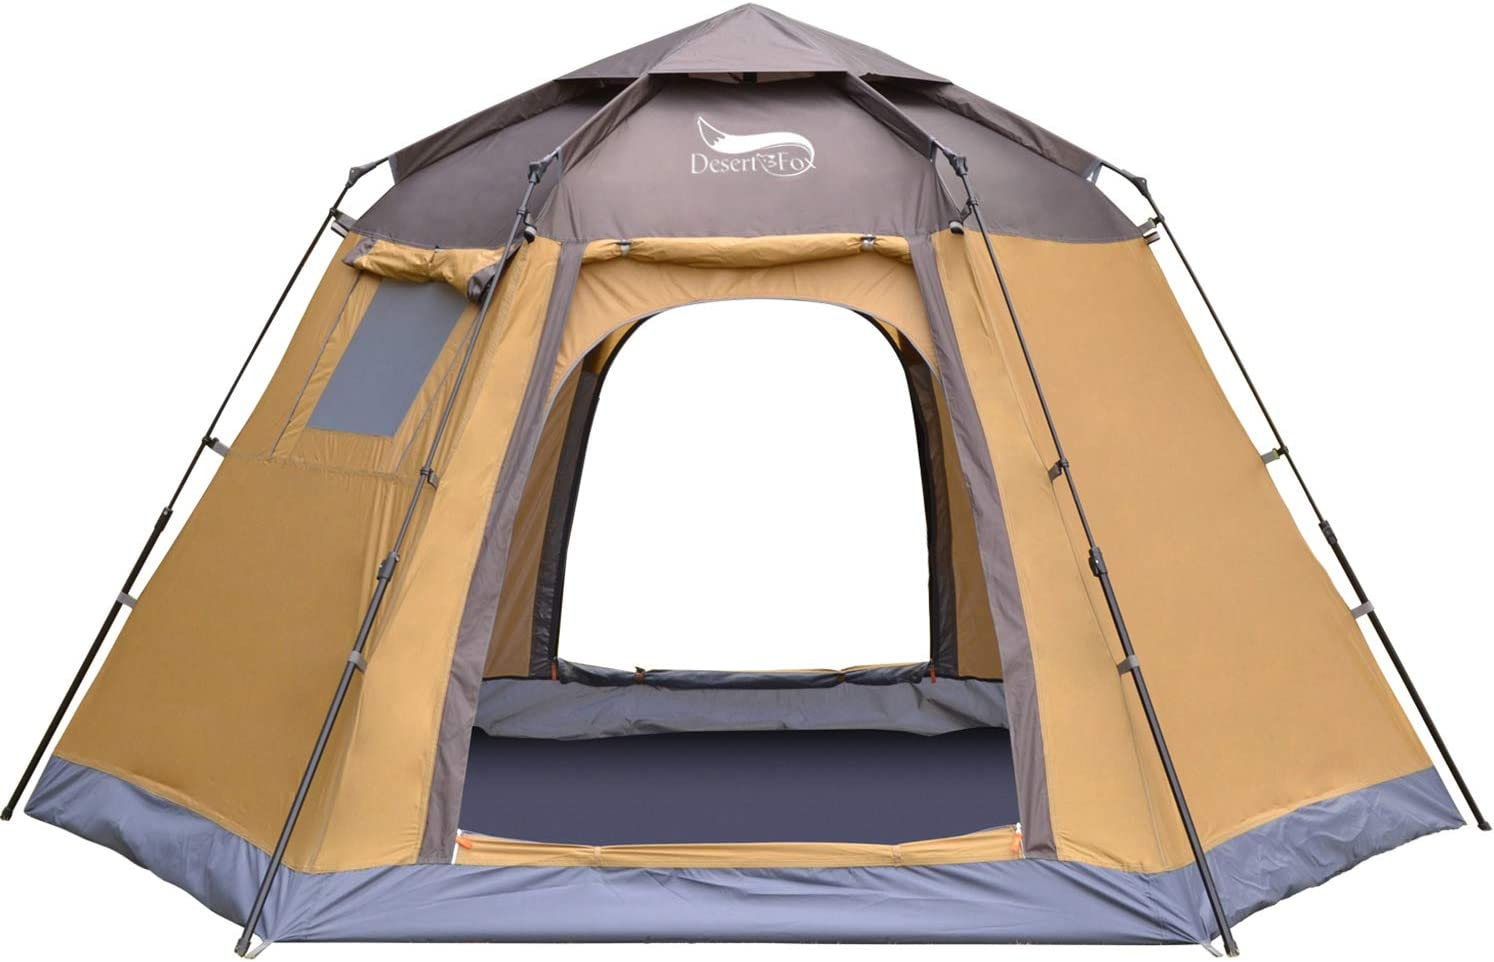 DESERT FOX Automatic Pop-up Tent, 4-5 Person Outdoor Instant Setup 4 Season Portable Backpacking Tent with Carry Bag for Hinking, Camping, Traveling